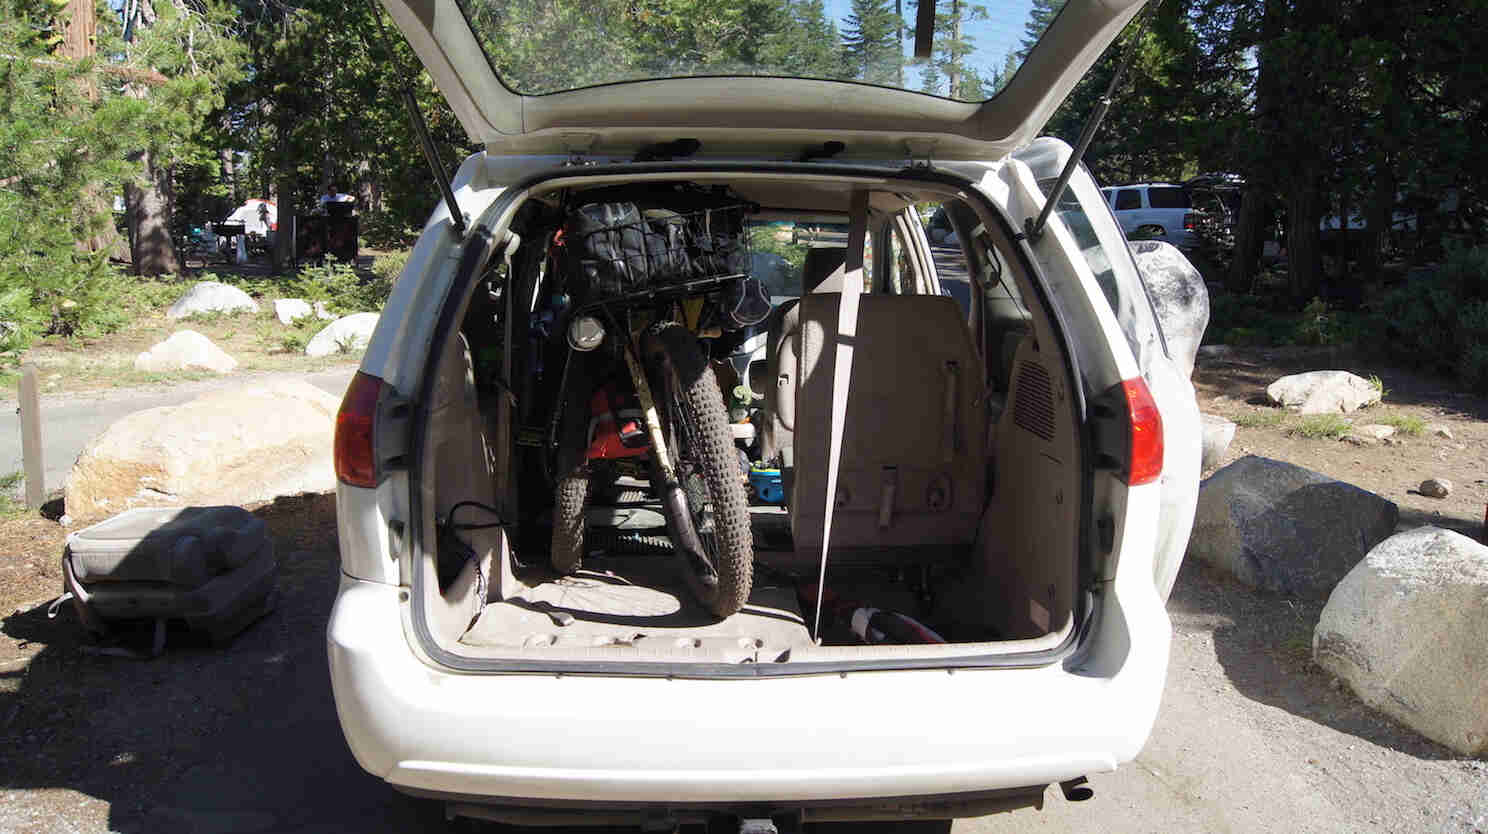 Rear view of a minivan with the back door open, with bike loaded in back